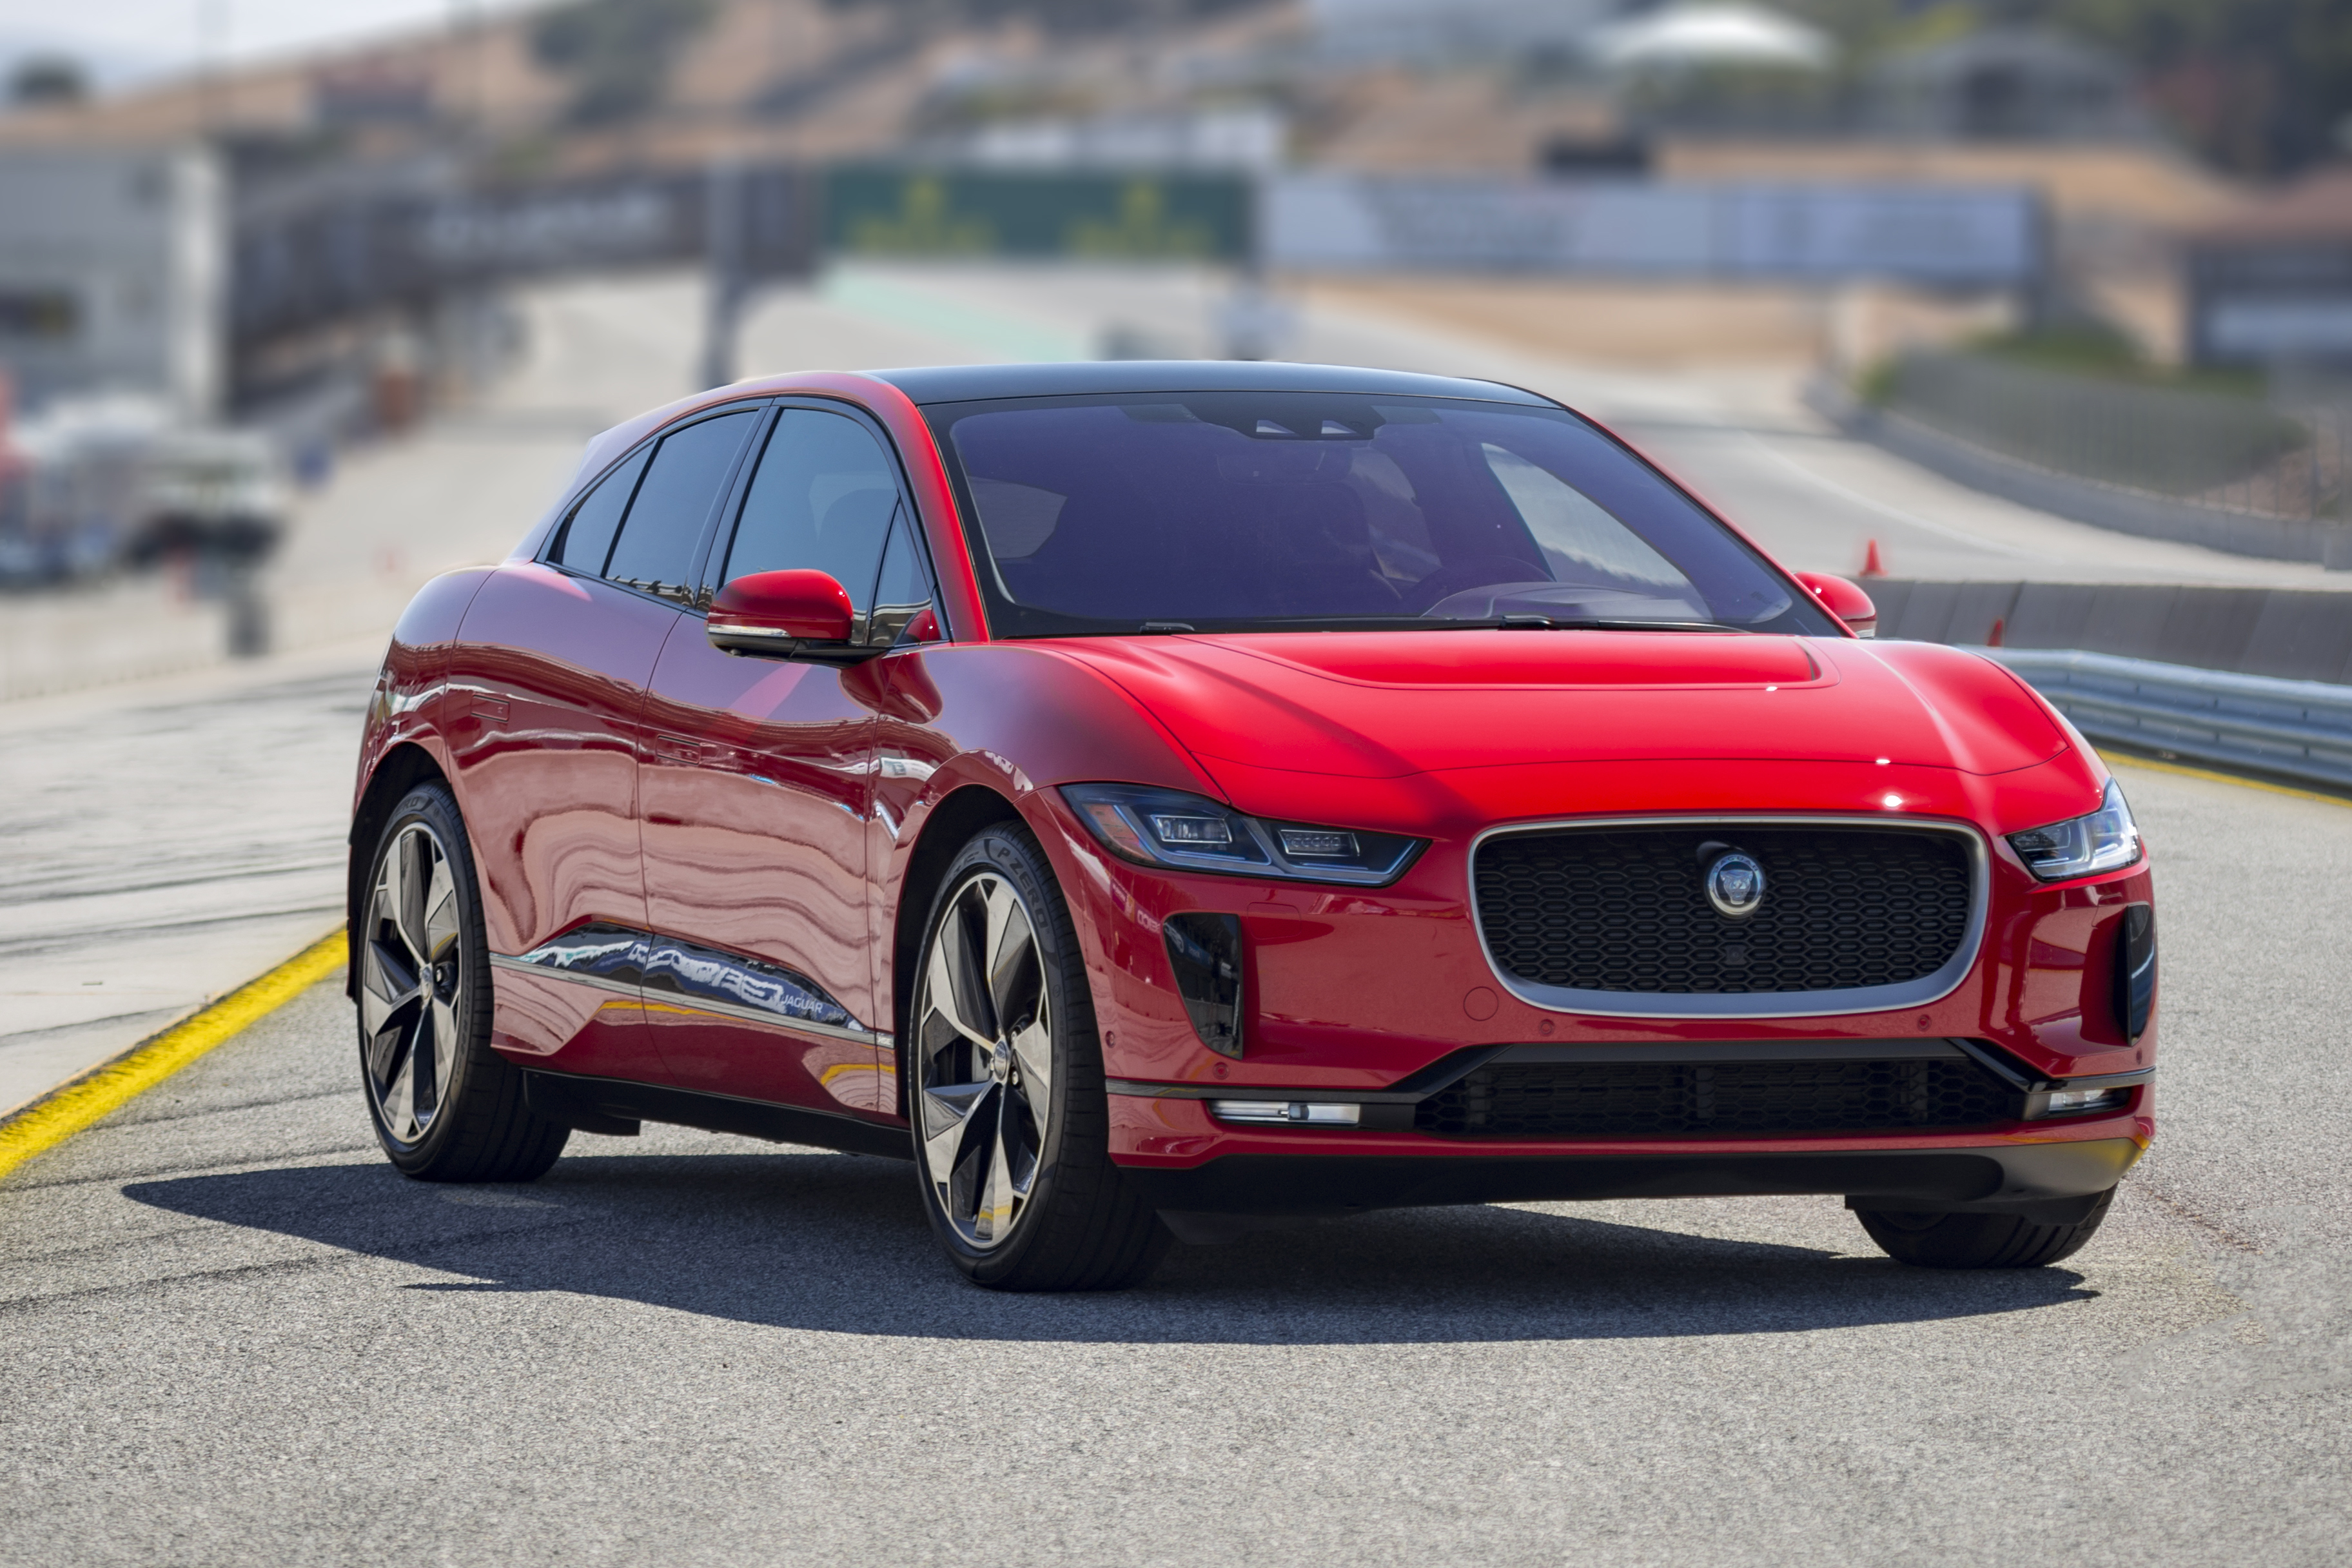 JAGUAR I-PACE SETS PRODUCTION EV RECORD LAP TIME AT WEATHERTECH RACEWAY  LAGUNA SECA AHEAD OF ROLEX MONTEREY MOTORSPORTS REUNION  Jaguar Homepage  International